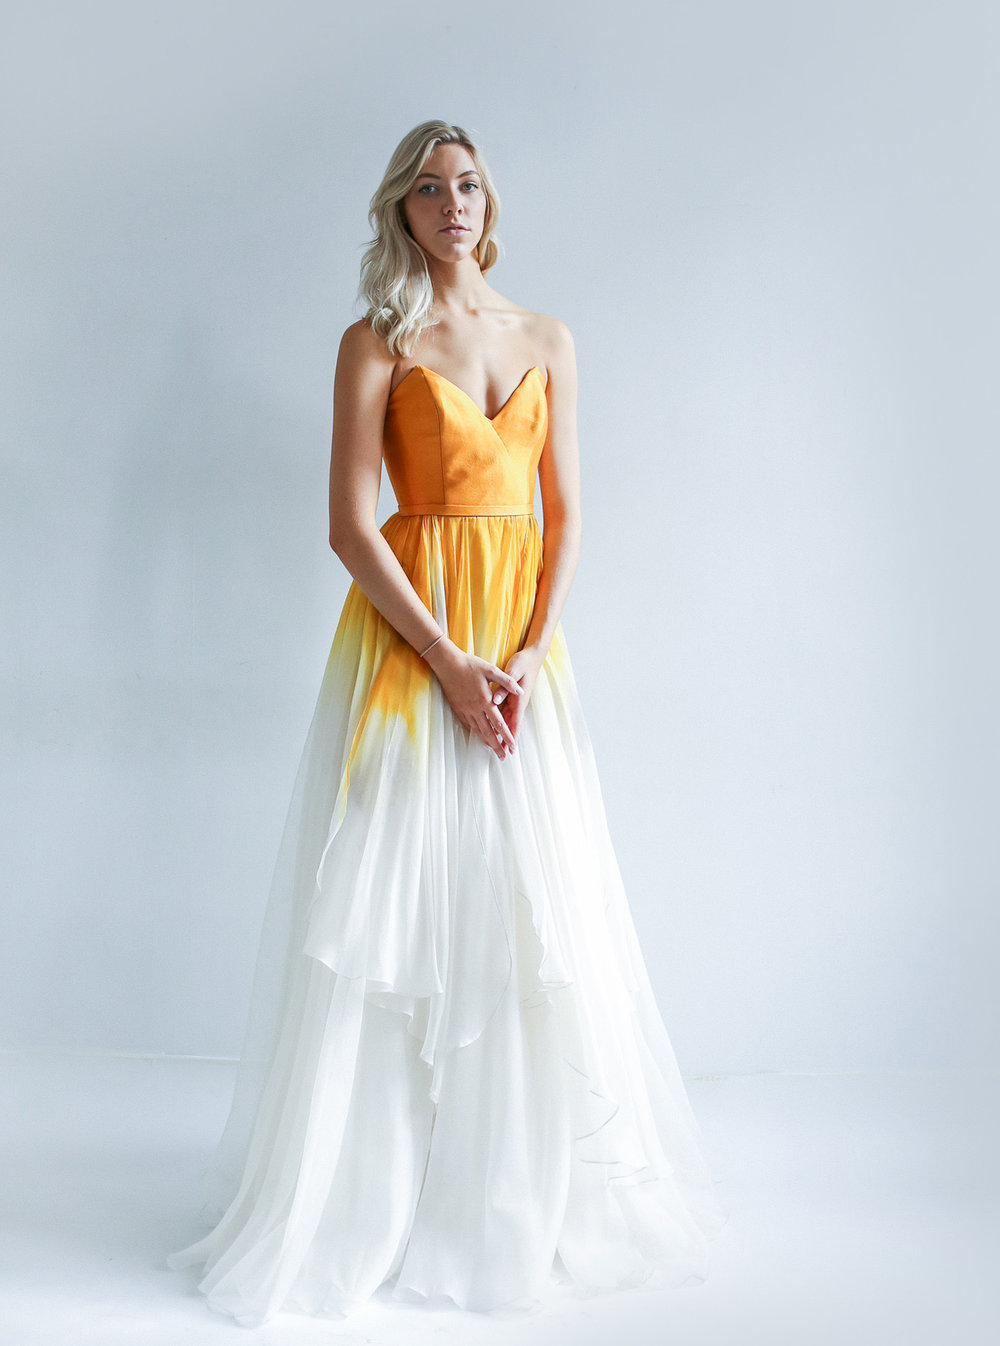 The Aurora Gown - Colourful Wedding Dress Inspiration